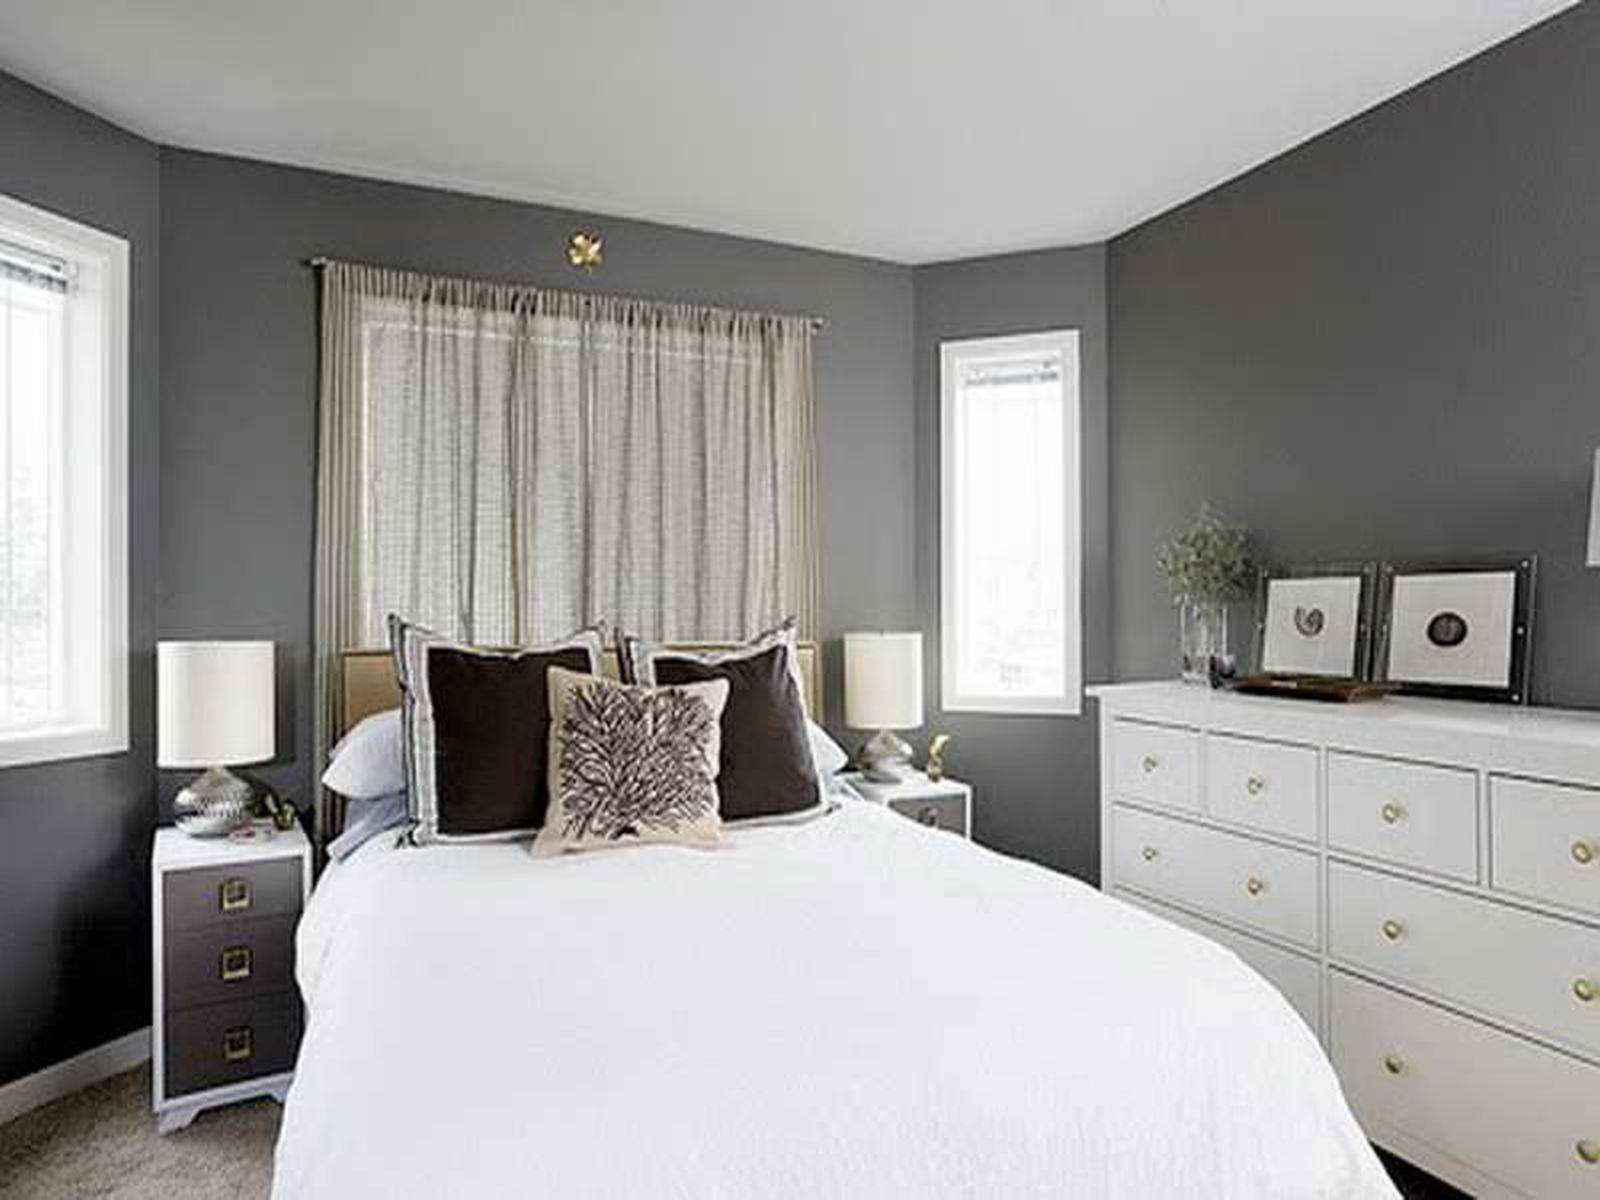 Merveilleux Decorate Small Bedroom With White Bed And Classic Dresser Near Grey Paint  Colors And Carpet Flooring